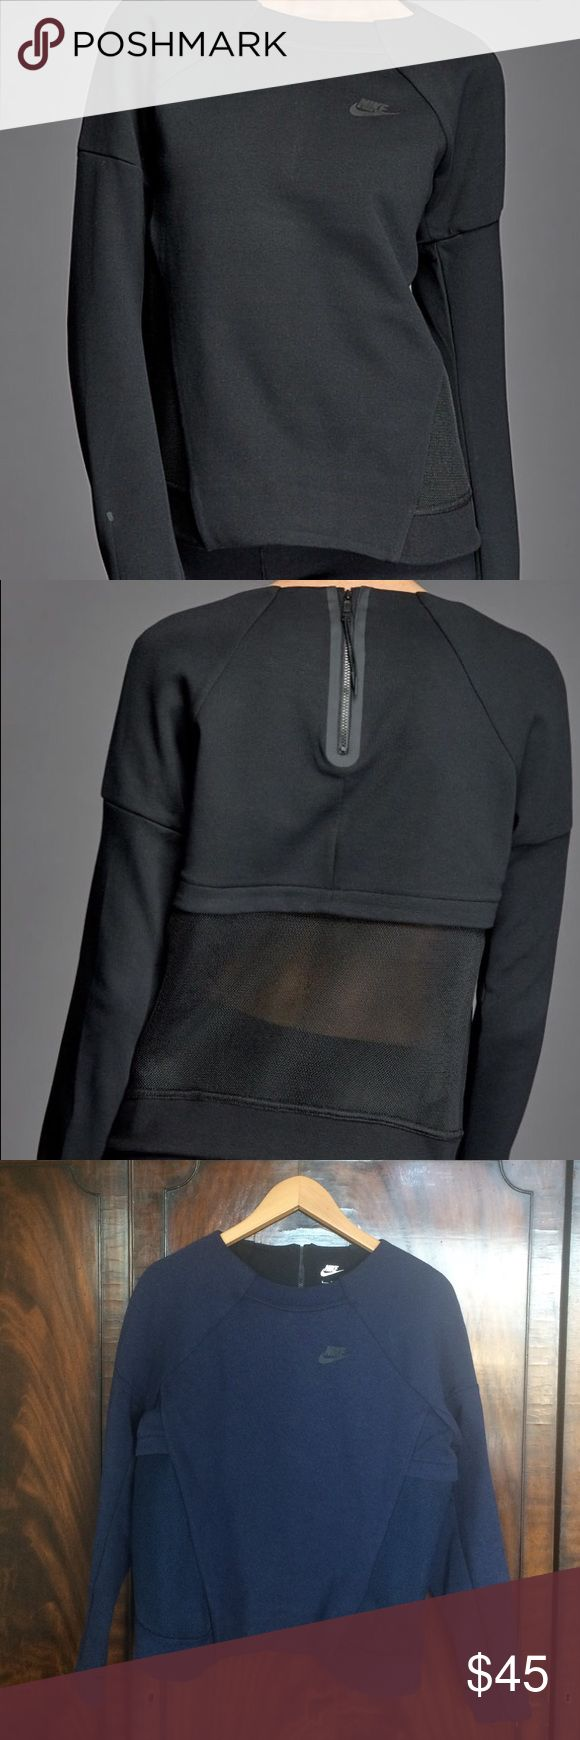 Nike Tech Fleece Mesh Crew Women's Small. Awesome condition, washed one time. No holes or stains, like new. Navy color. Nike Sweaters